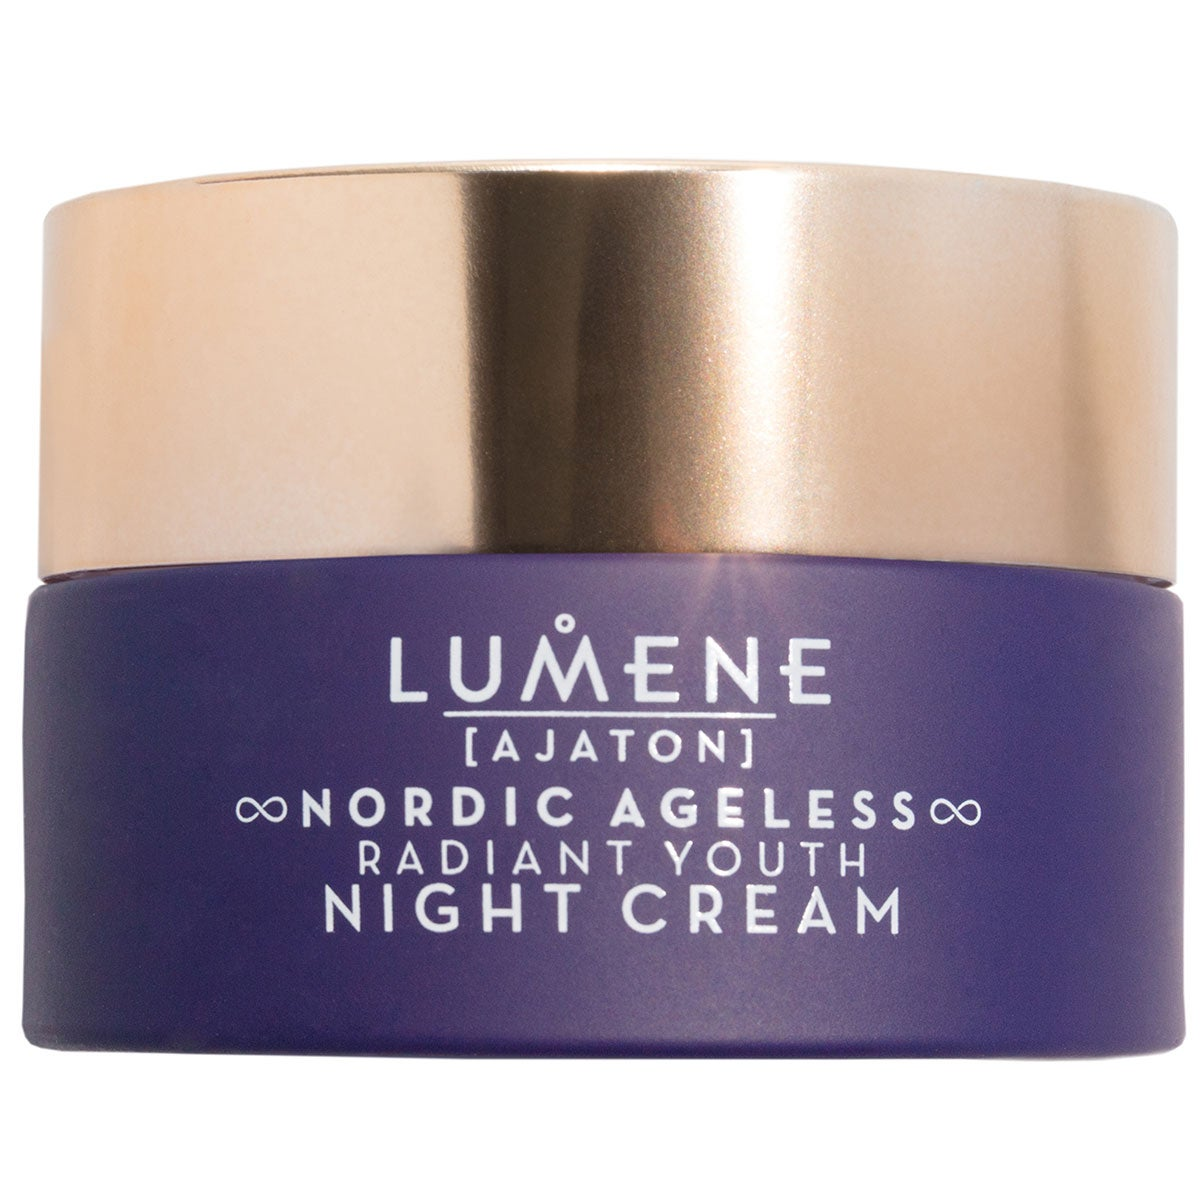 Lumene Nordic Ageless Radiant Youth Night Cream